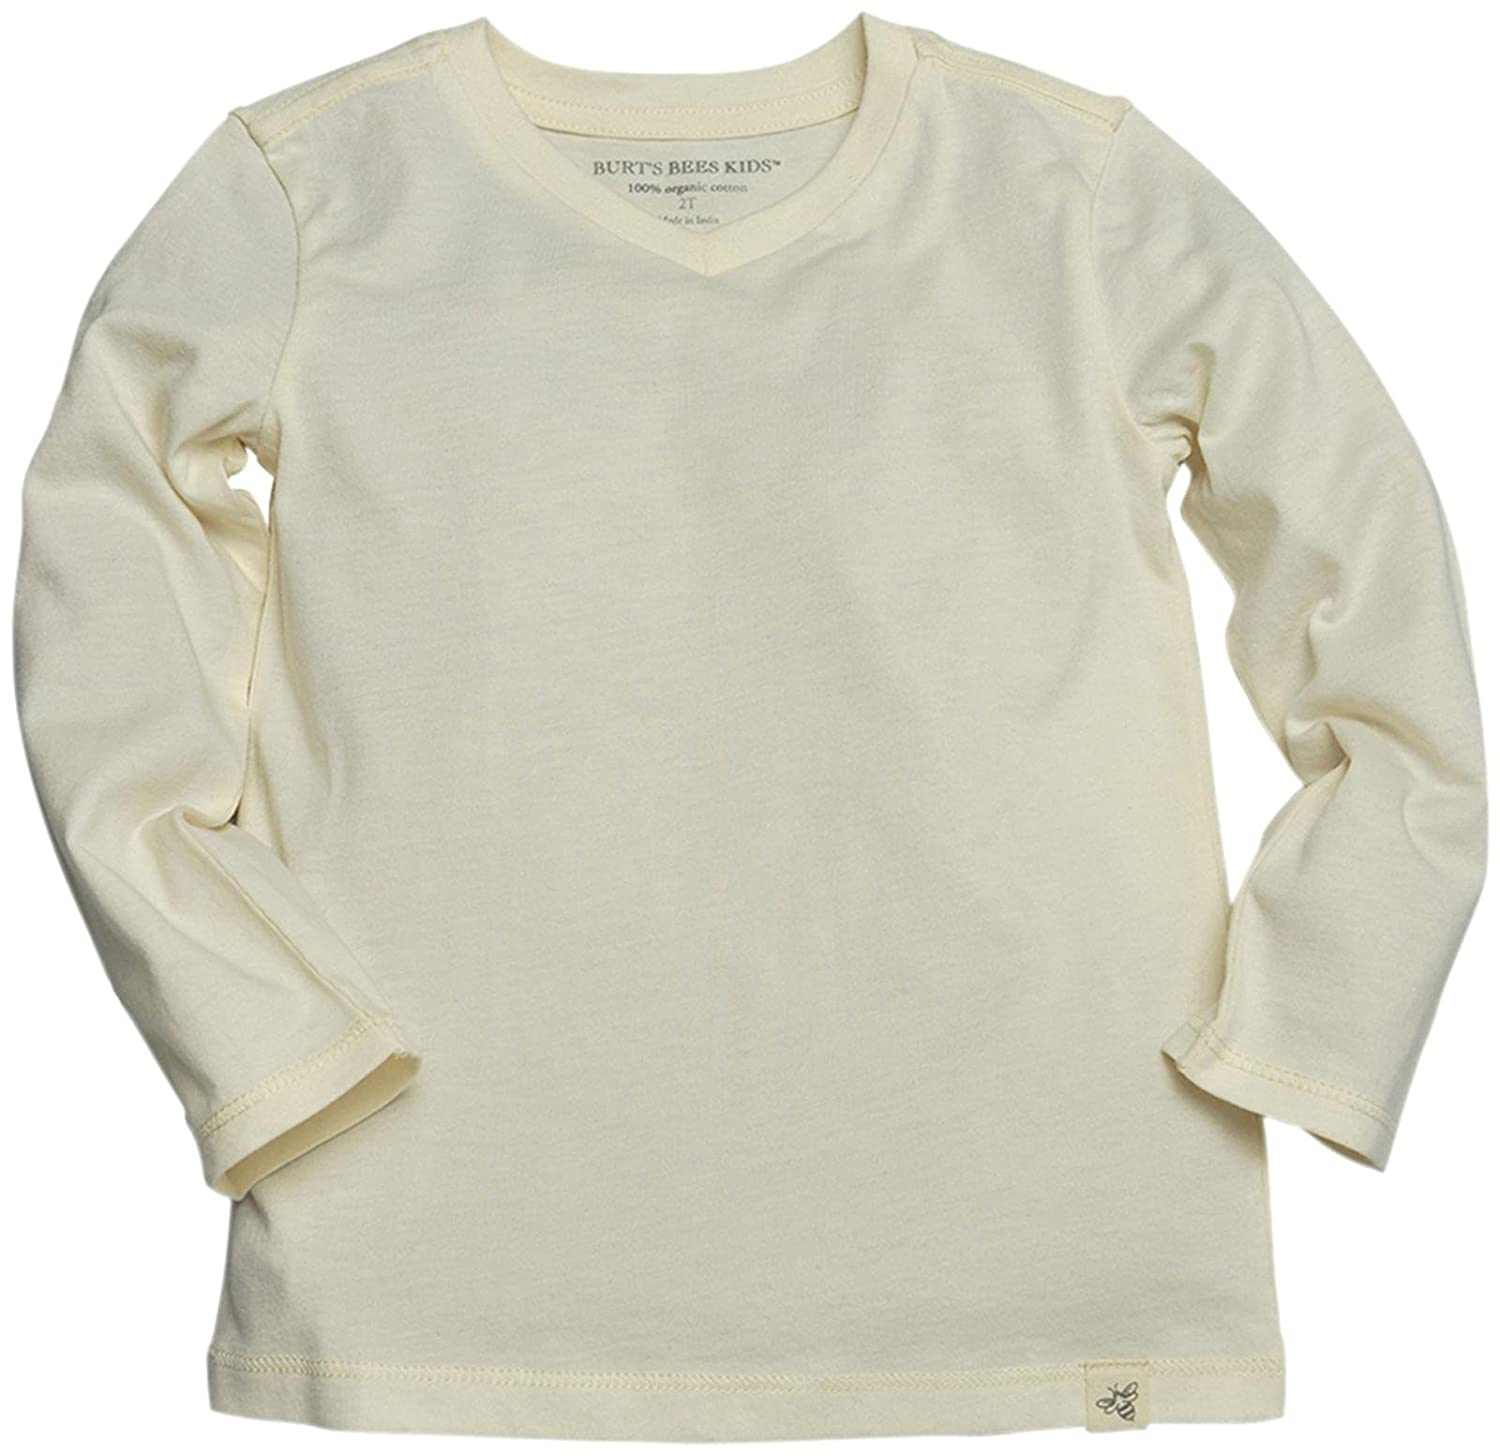 Burt's Bees Baby - Baby Boys T-Shirt, Long Sleeve V-Neck and Crewneck Tees, 100% Organic Cotton LY23948